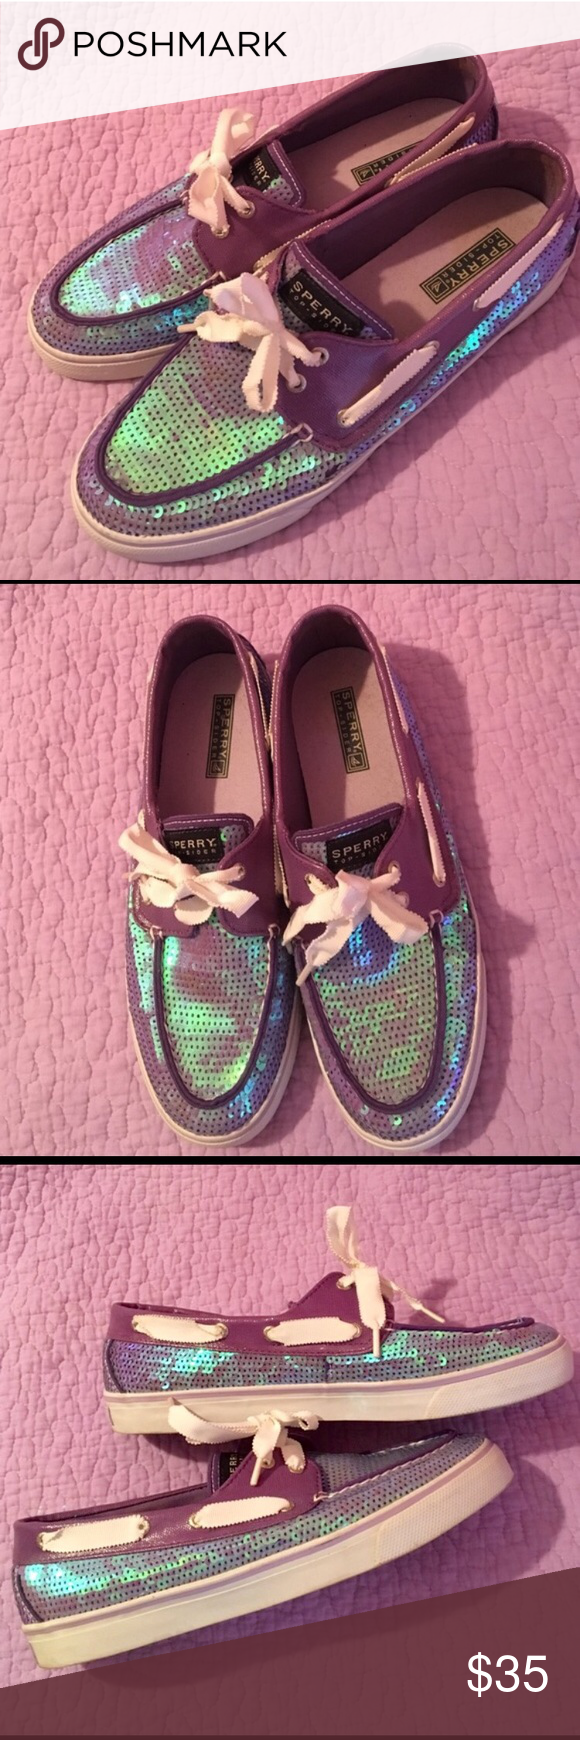 Women's Sperry boat shoes Women's Sperry's- purple sequin metallic size 9 Sperry Top-Sider Shoes Flats & Loafers